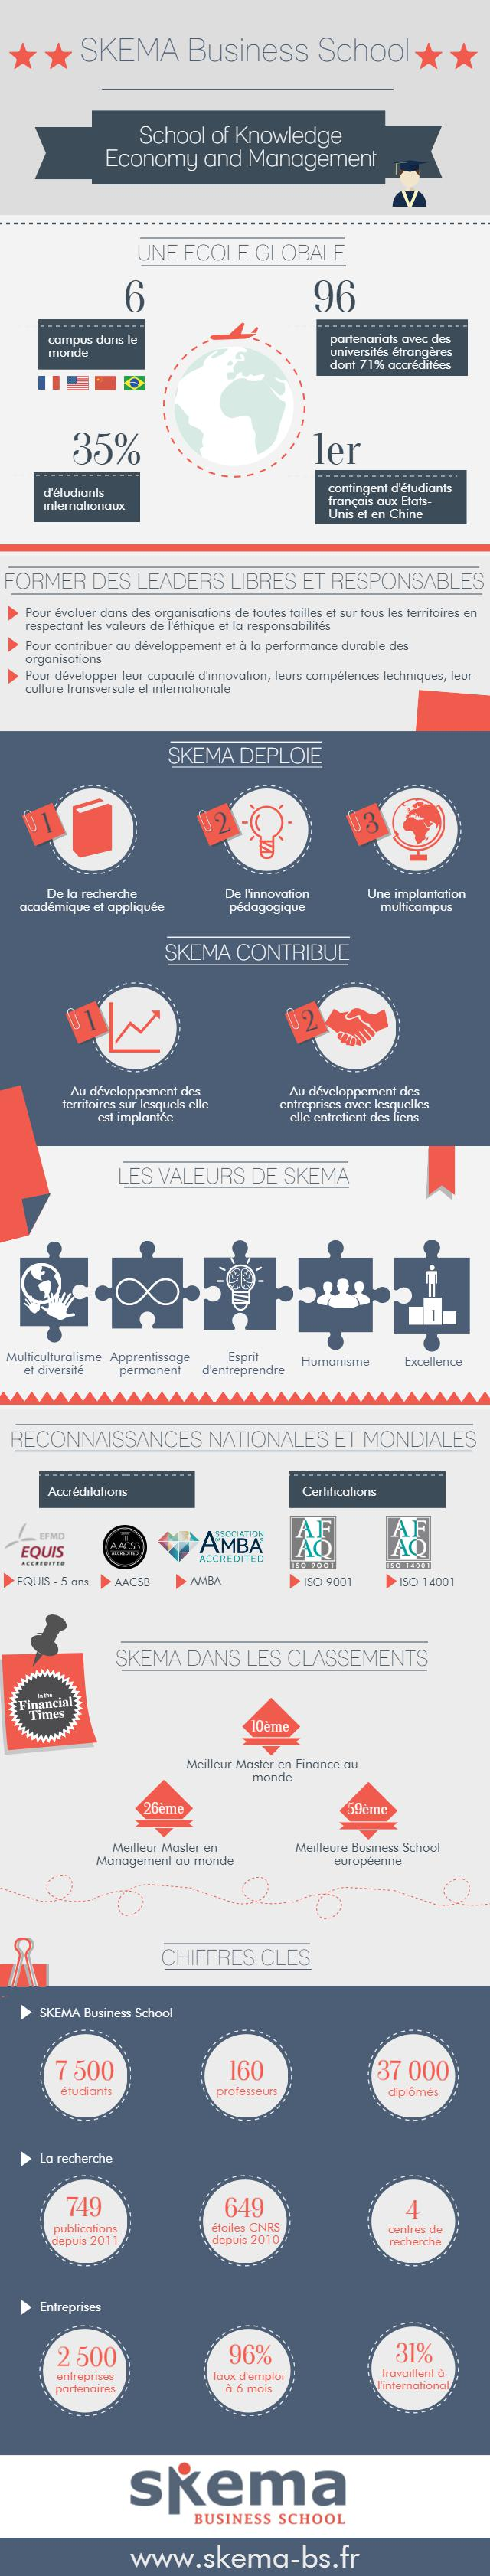 Infographie SKEMA Business School